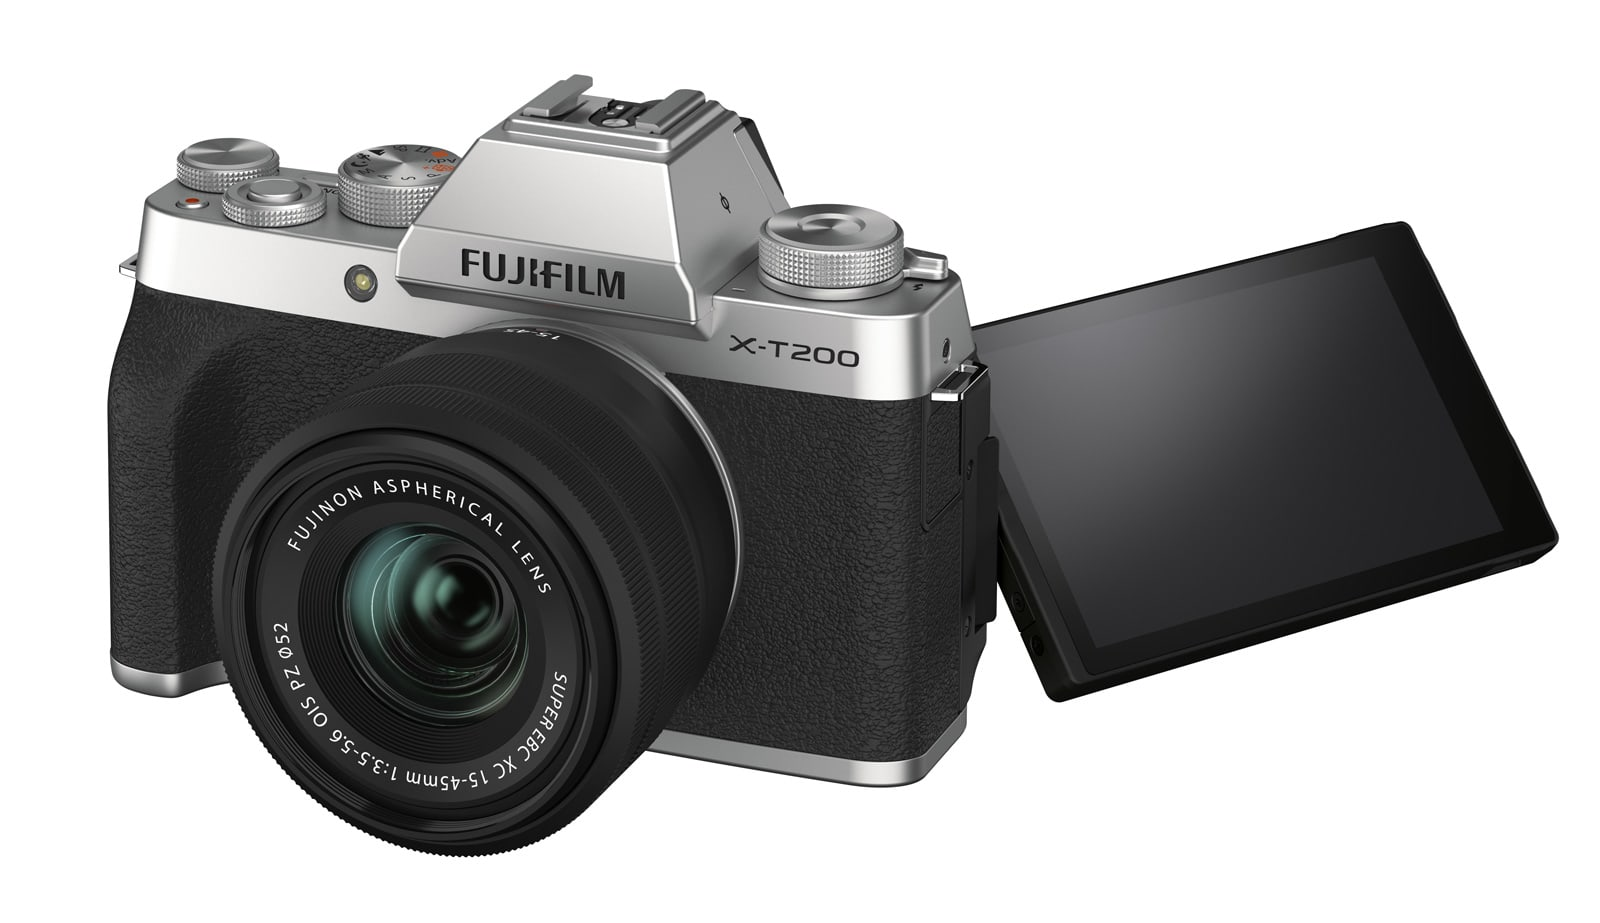 Fujifilm's X-T200 mirrorless camera uses gyros for ultra-stable video